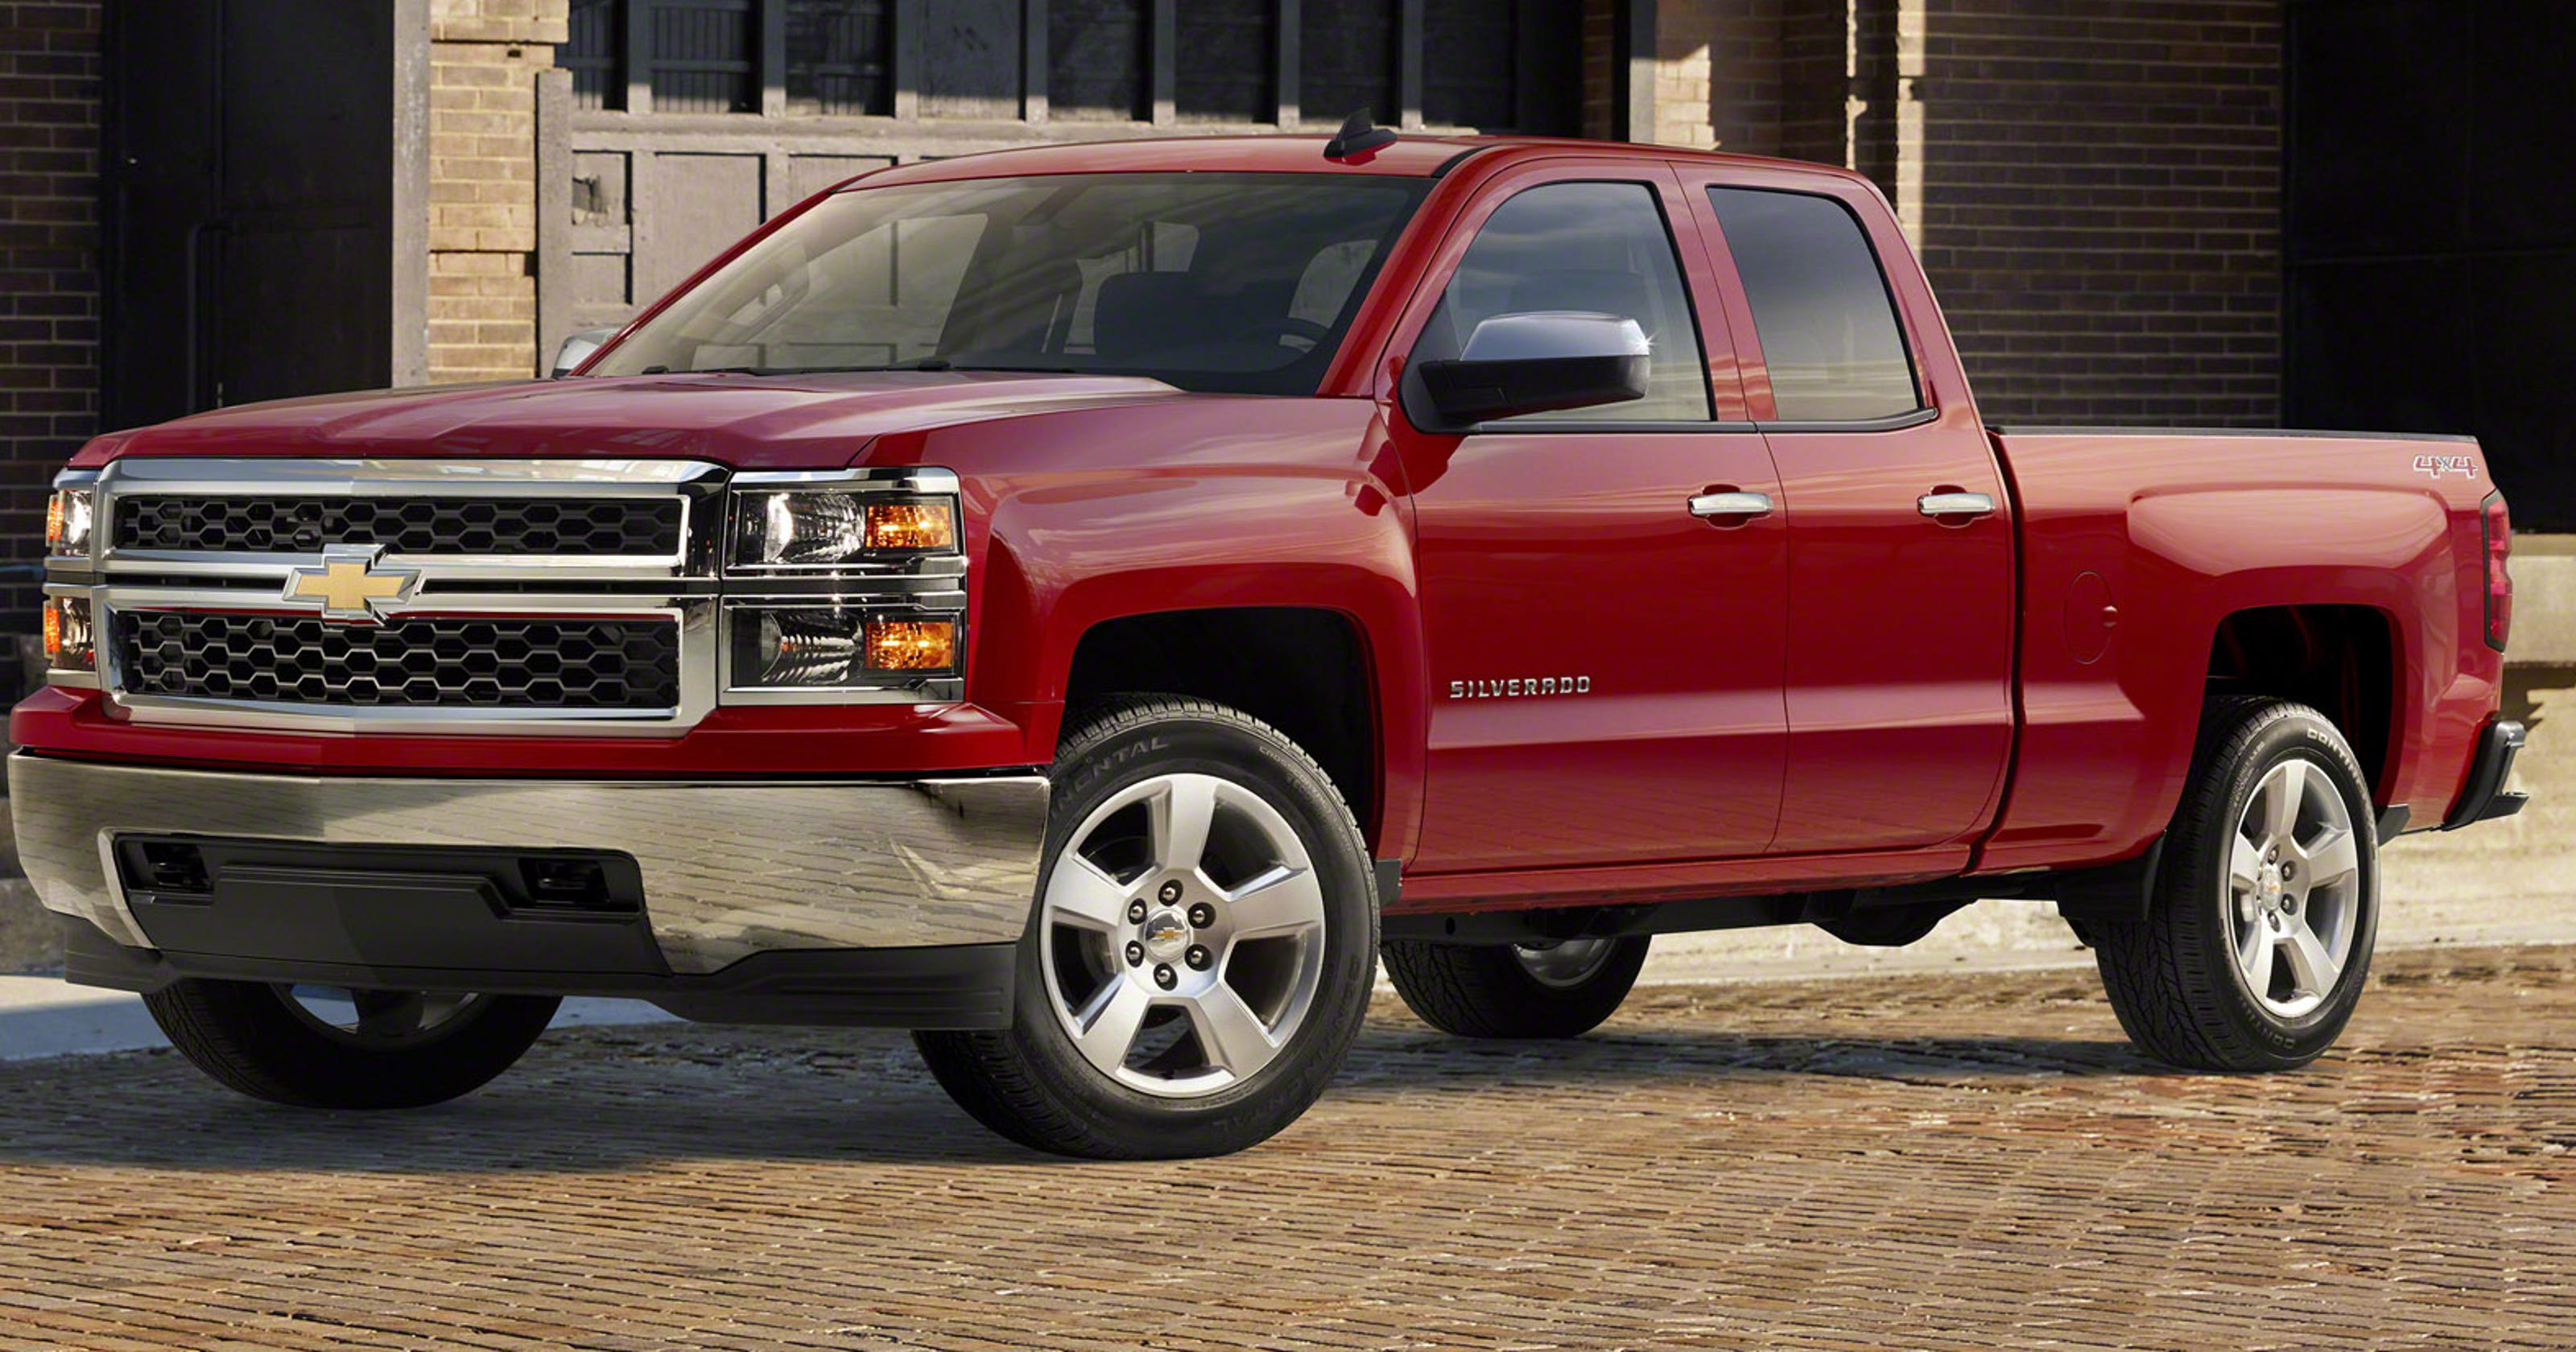 Gm Car Recall: GM Recalls 1 Million Pickup Trucks, SUVs Over Crash Risk